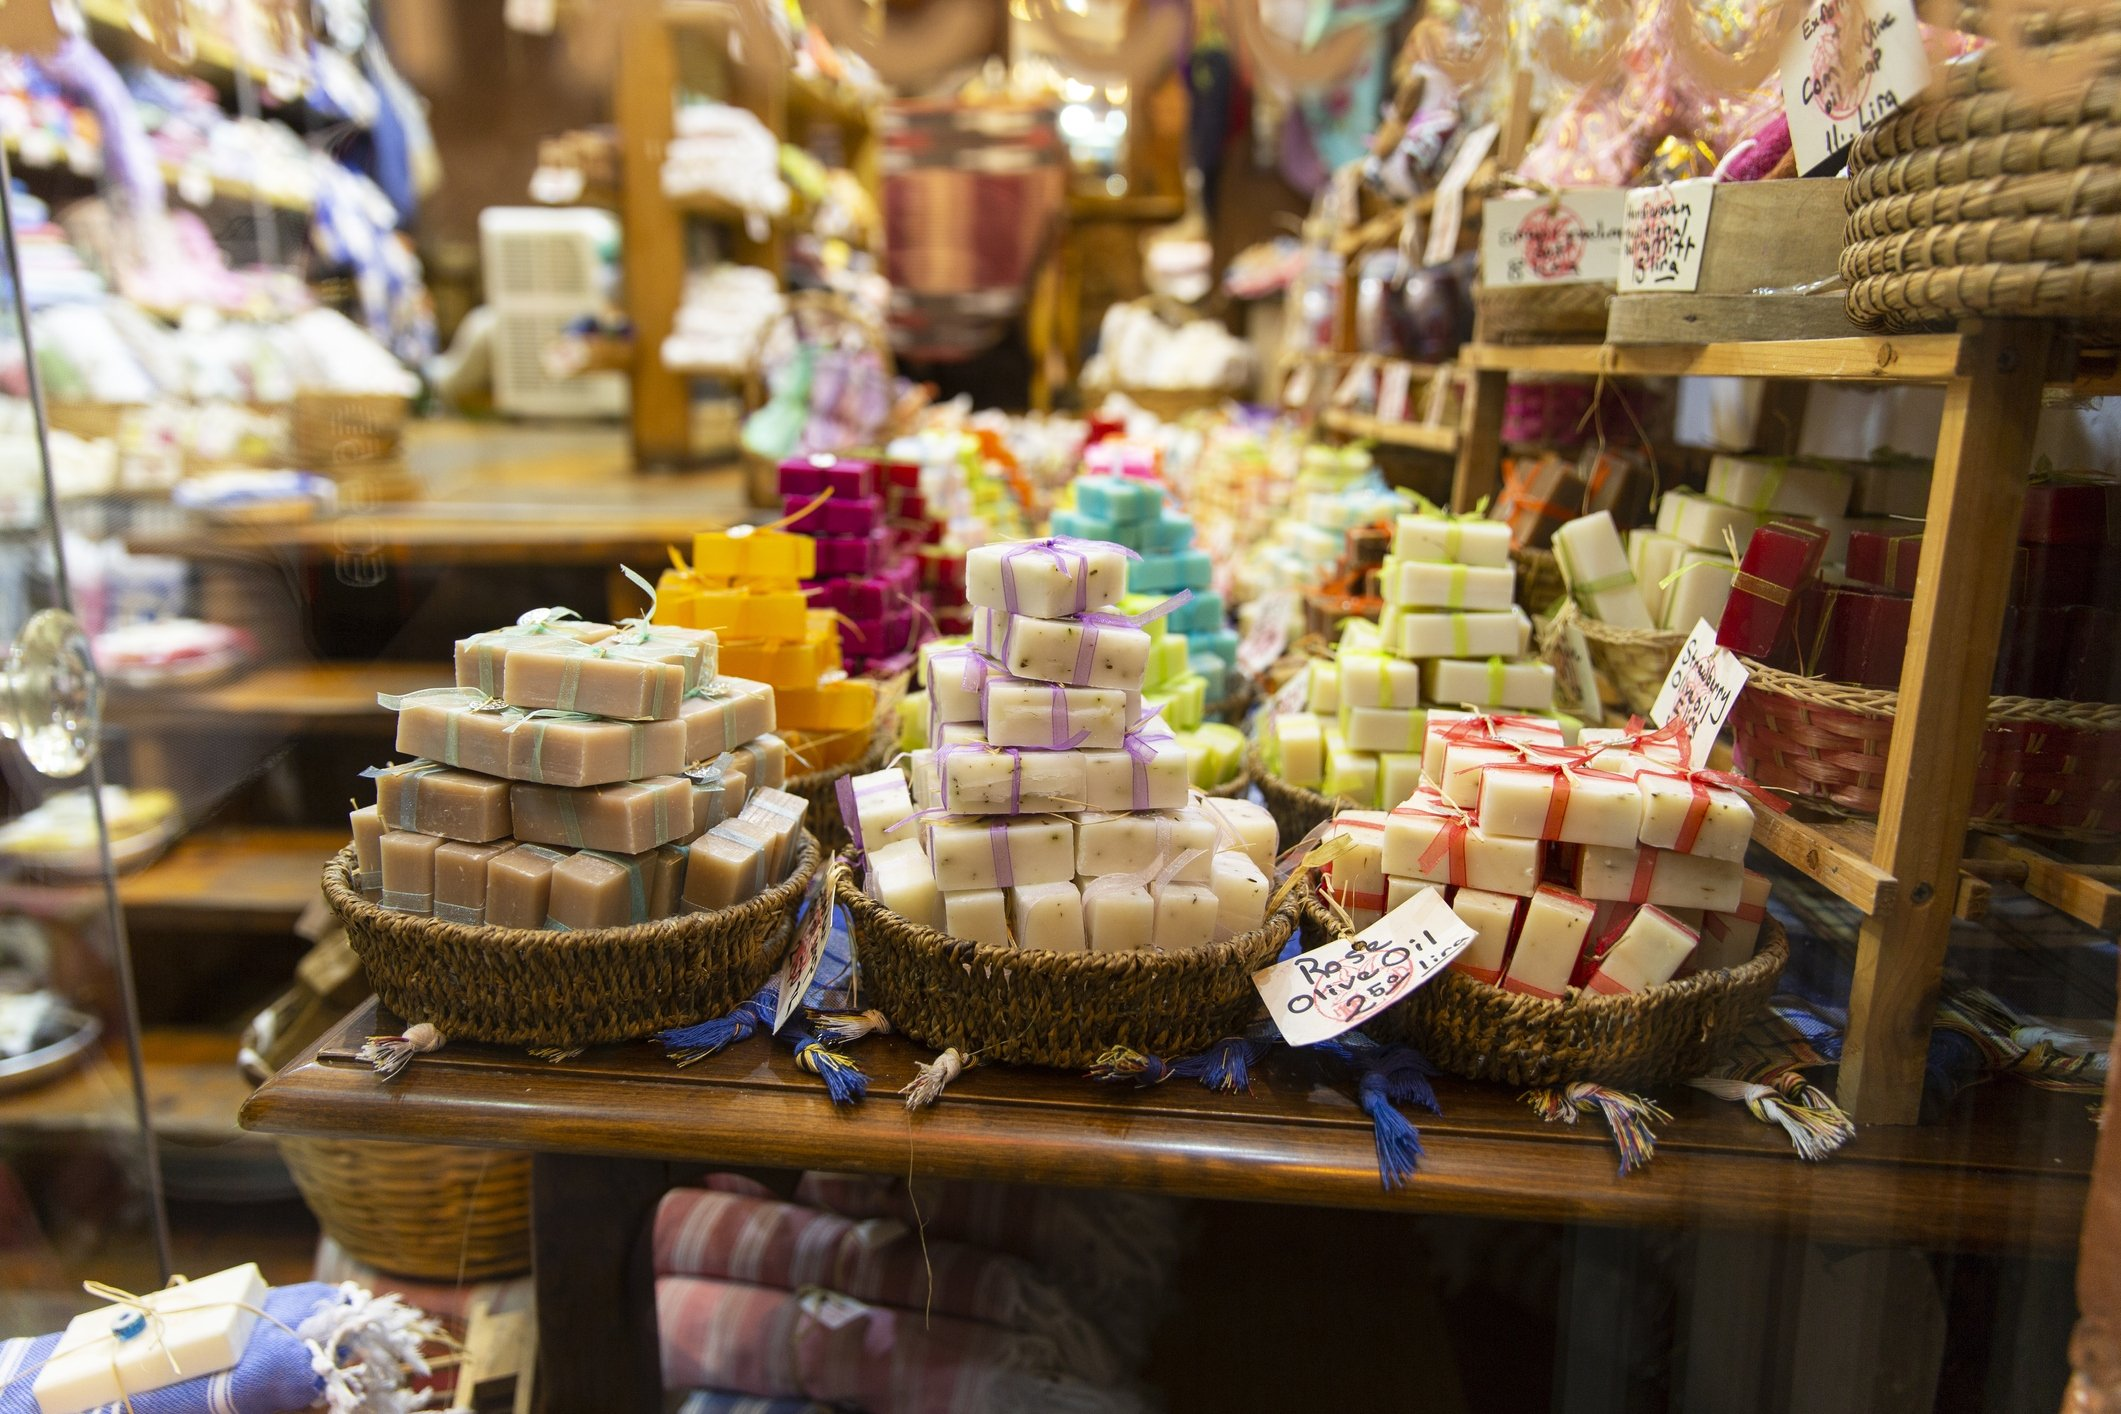 From lavender to pistachio, you can find soaps with all kinds of different smells and properties at the Grand Bazaar in Istanbul. (iStock Photo)